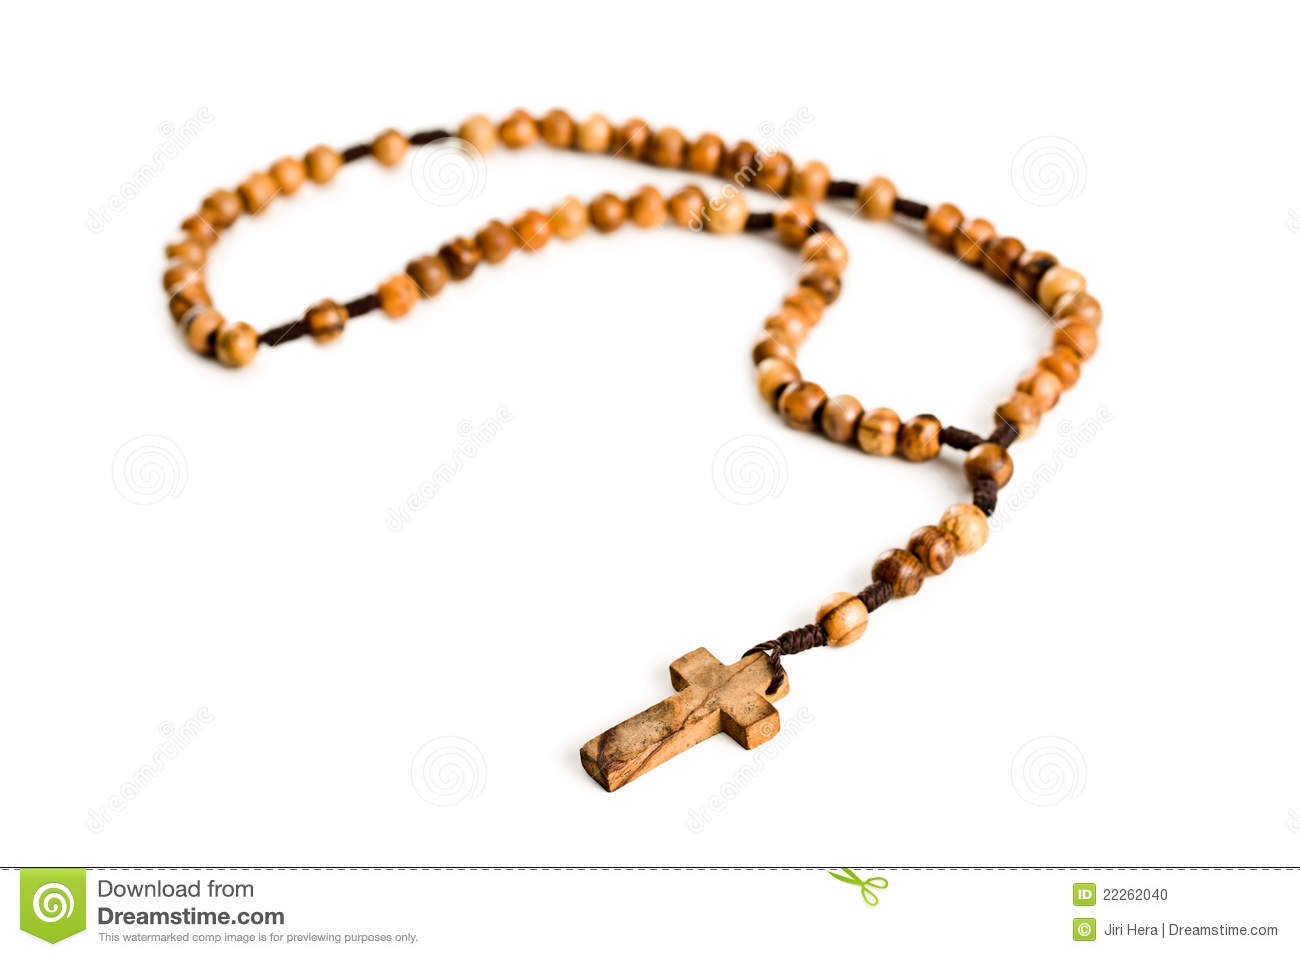 Catholic Rosary Beads Clipart Wooden Rosary Beads On White